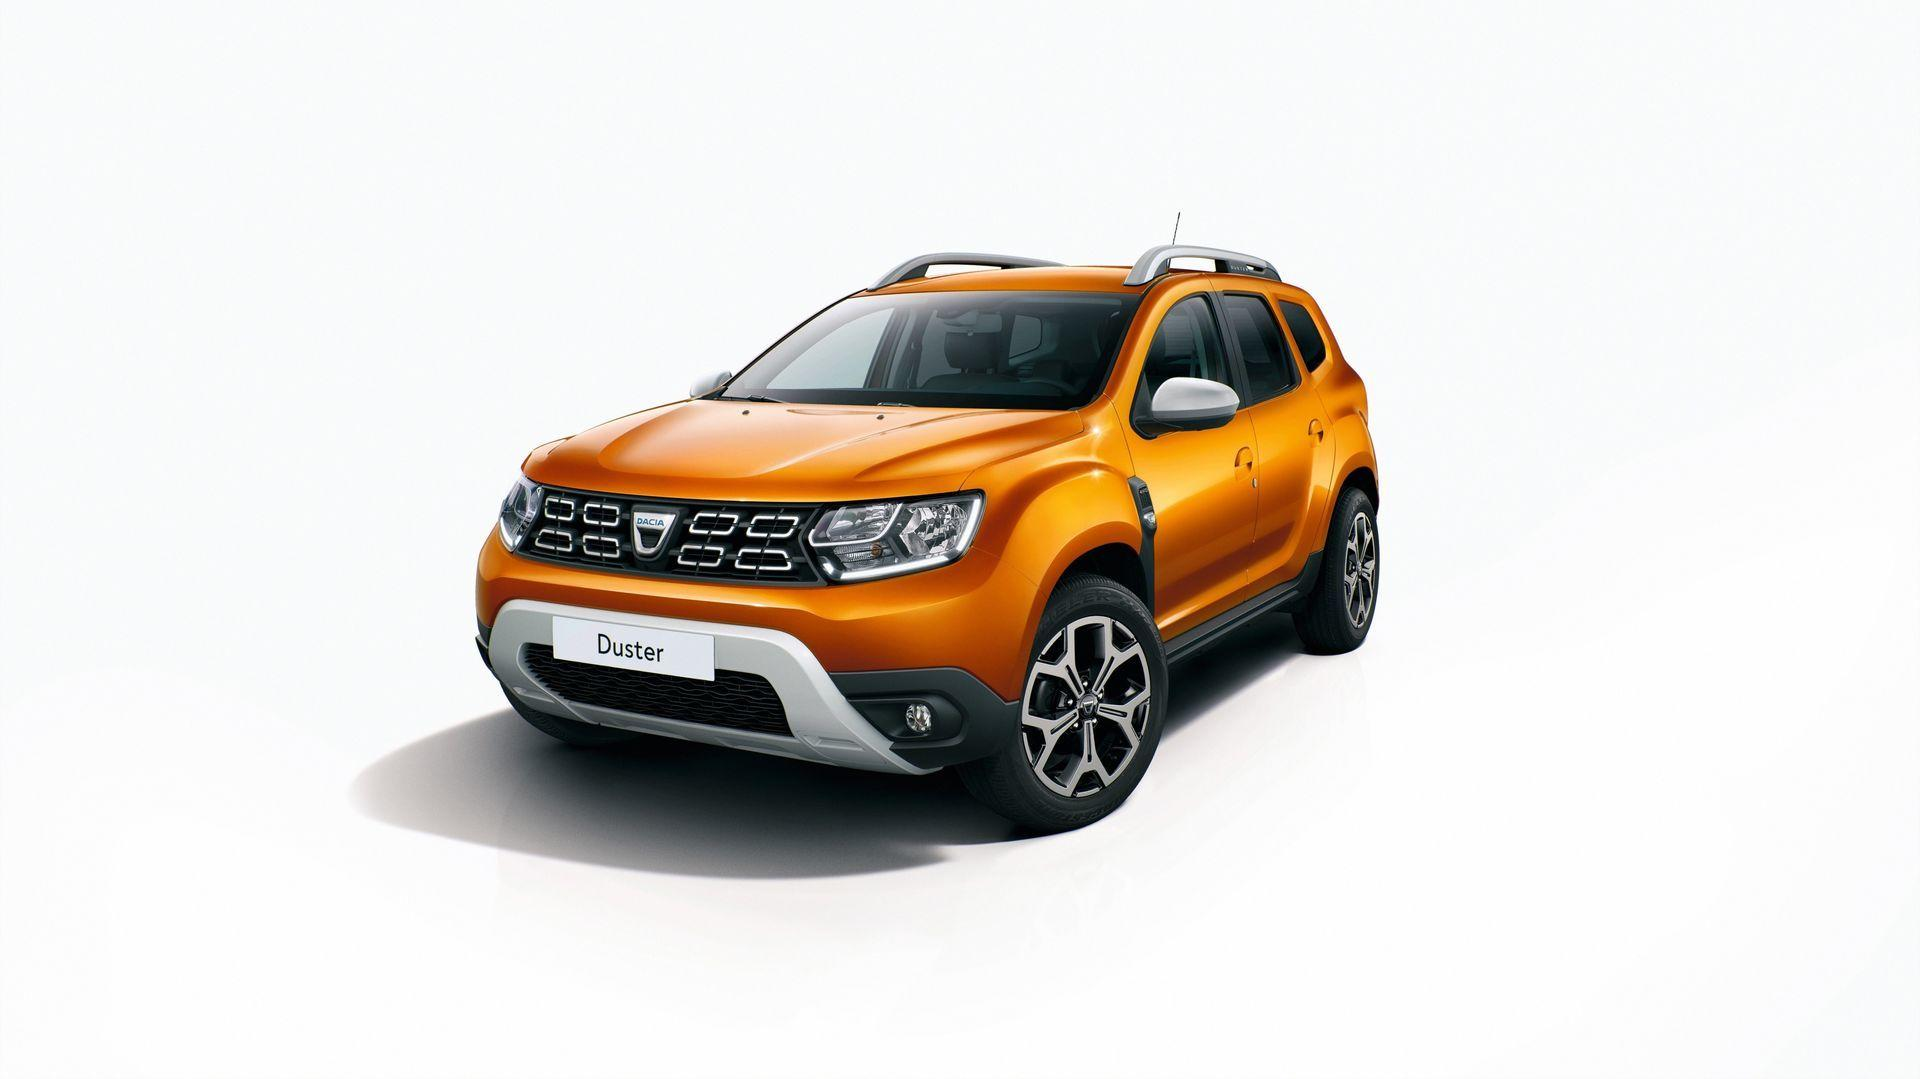 dacia duster precios prueba ficha t cnica fotos y noticias diariomotor. Black Bedroom Furniture Sets. Home Design Ideas